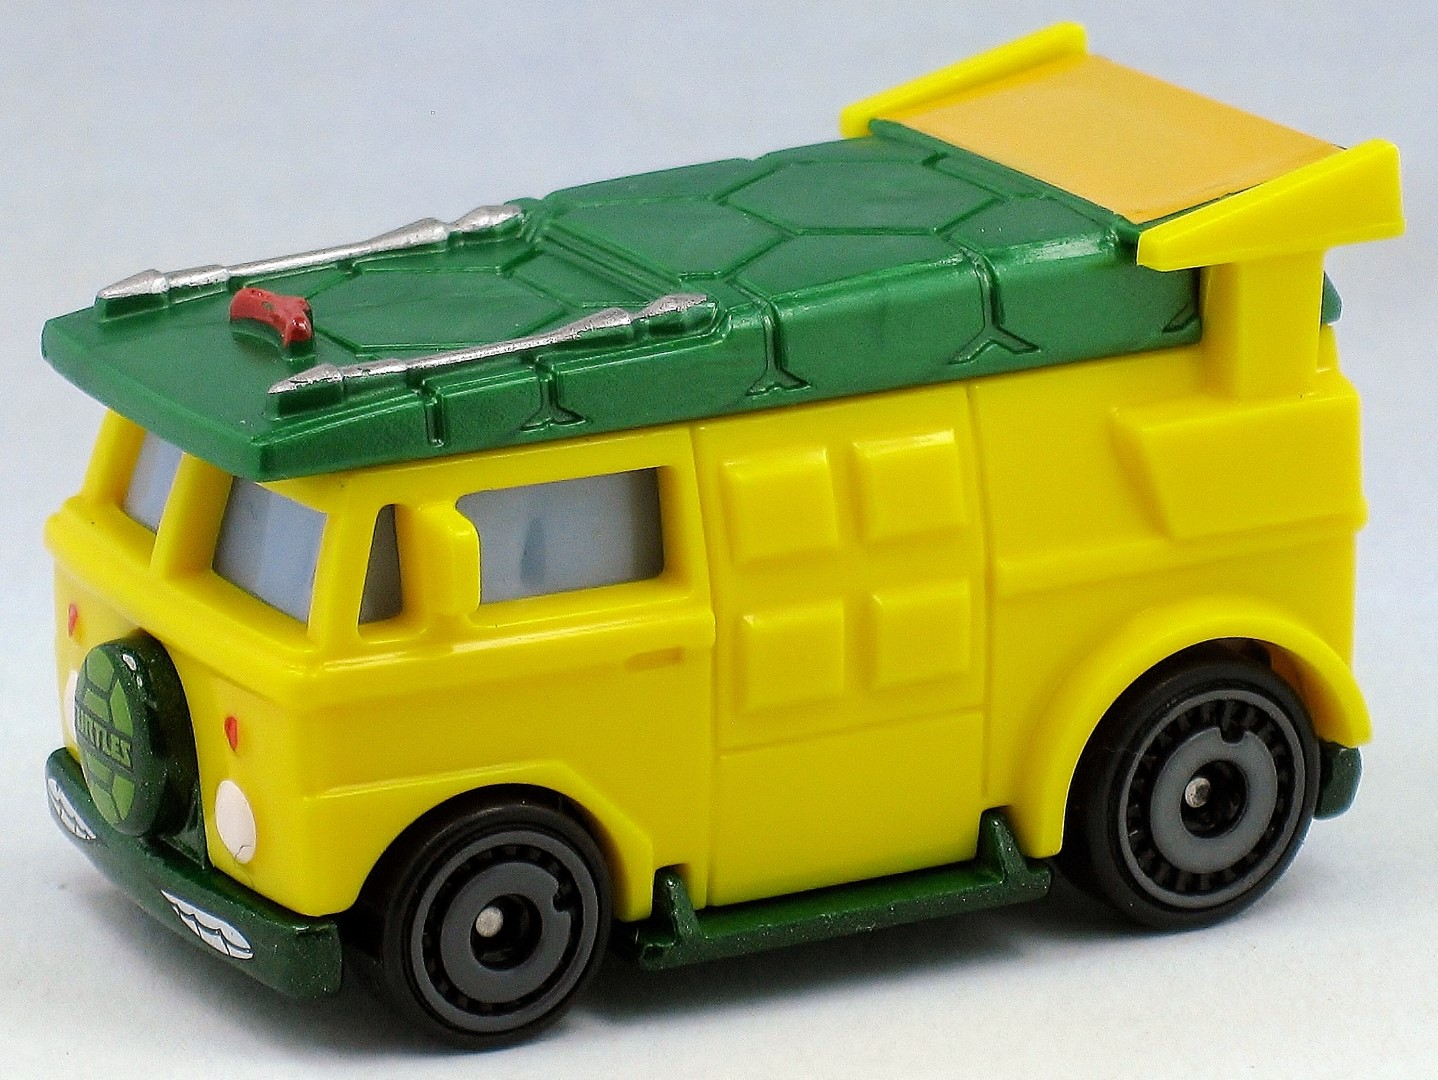 TMNT Party Wagon (mainline)